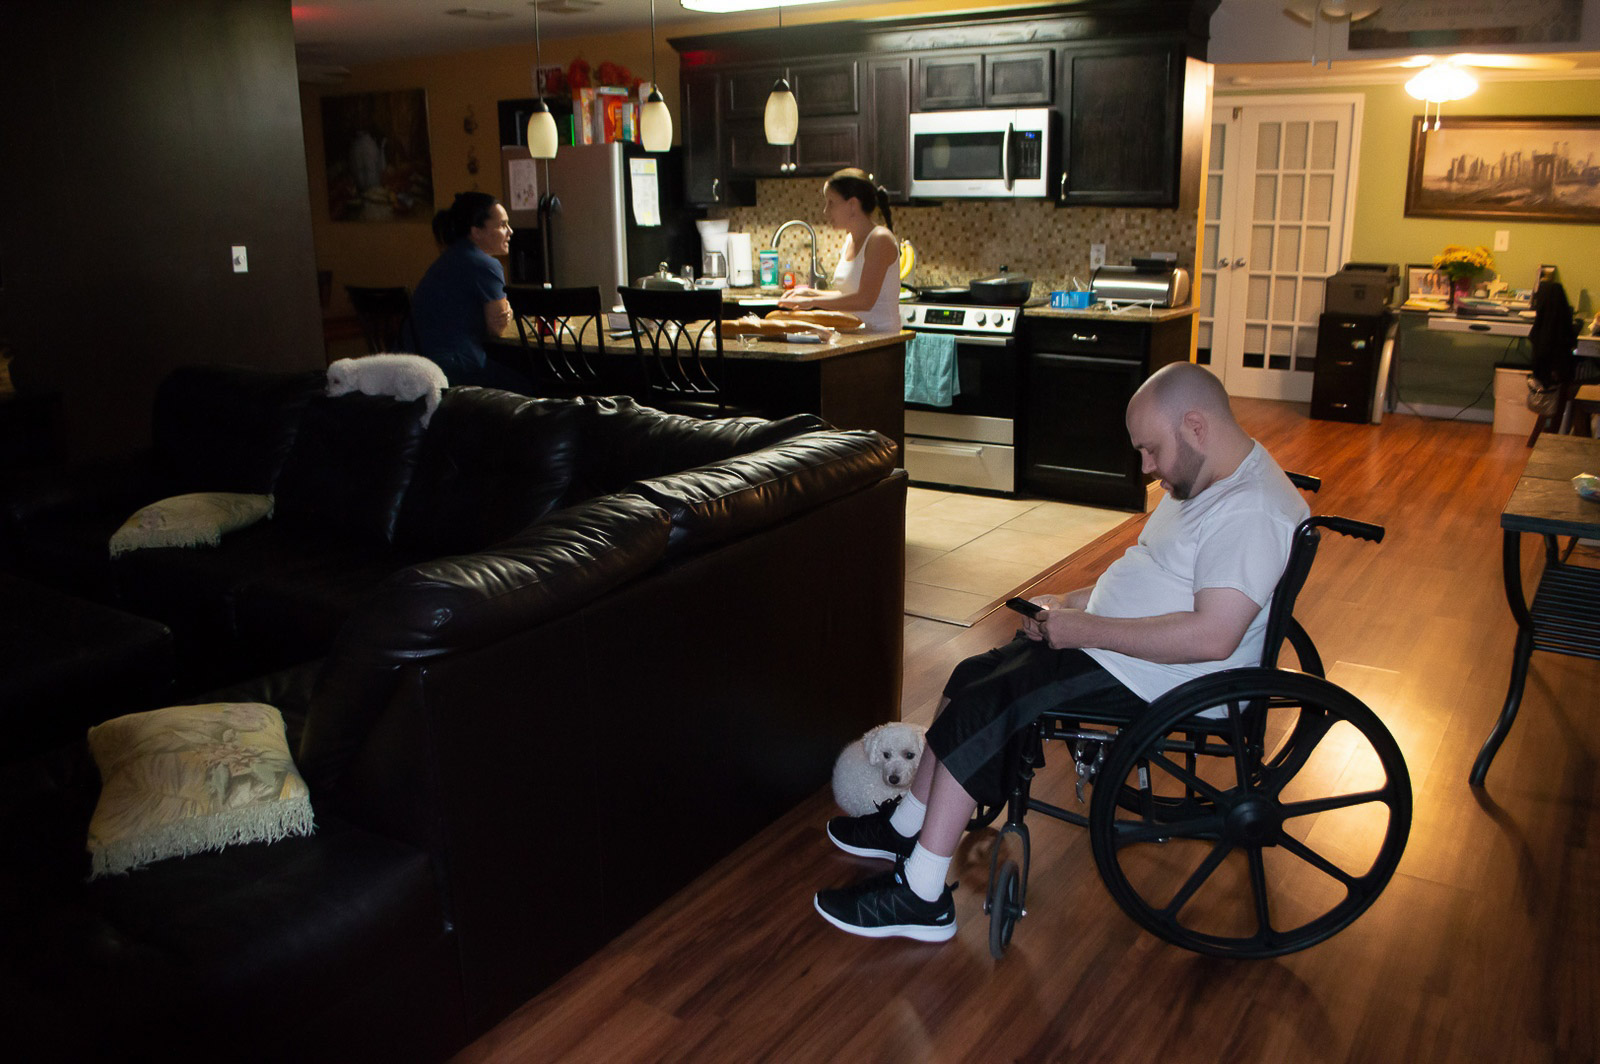 Group home resident in a wheelchair